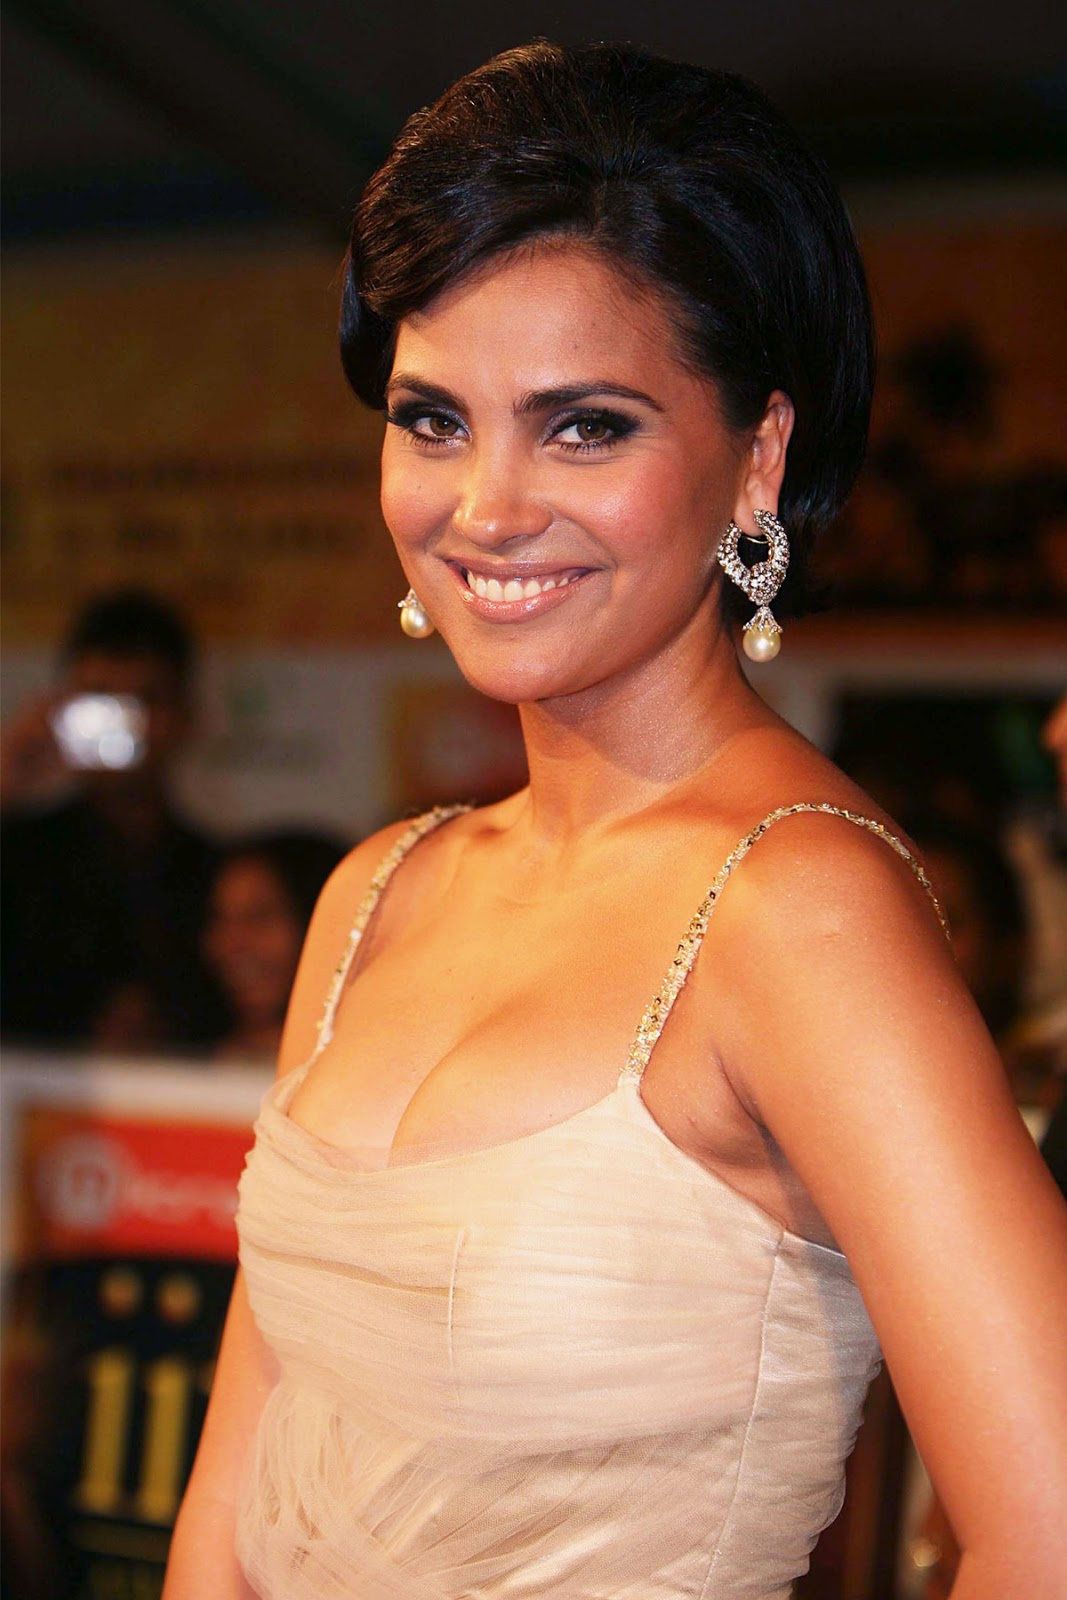 Lara dutta side pictures